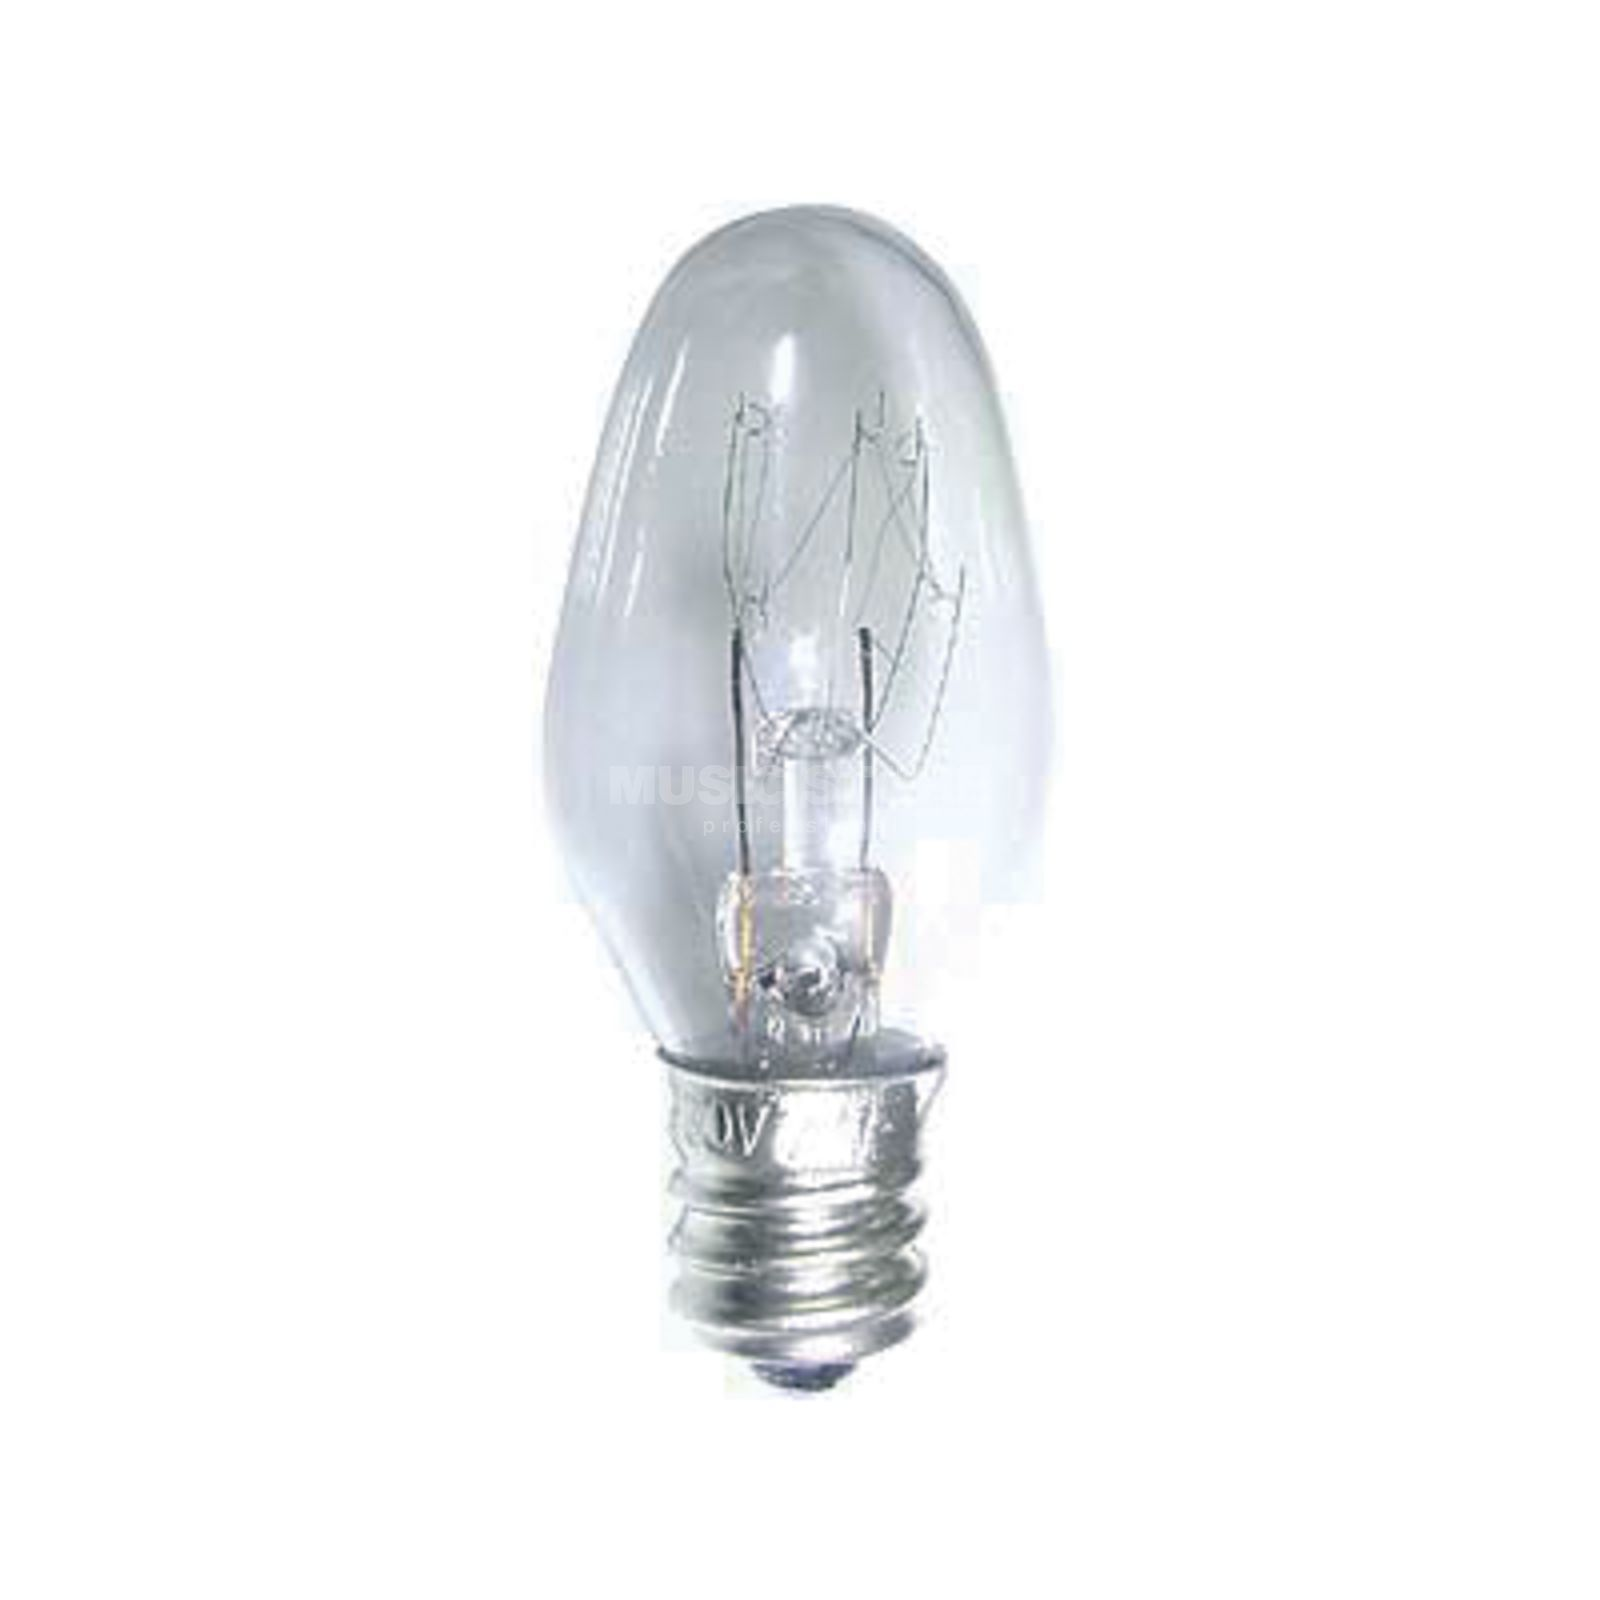 Furman V-120 Bulb 120V/5W for PL8/E,PL-Pro,PL-Plus/E etc Produktbillede